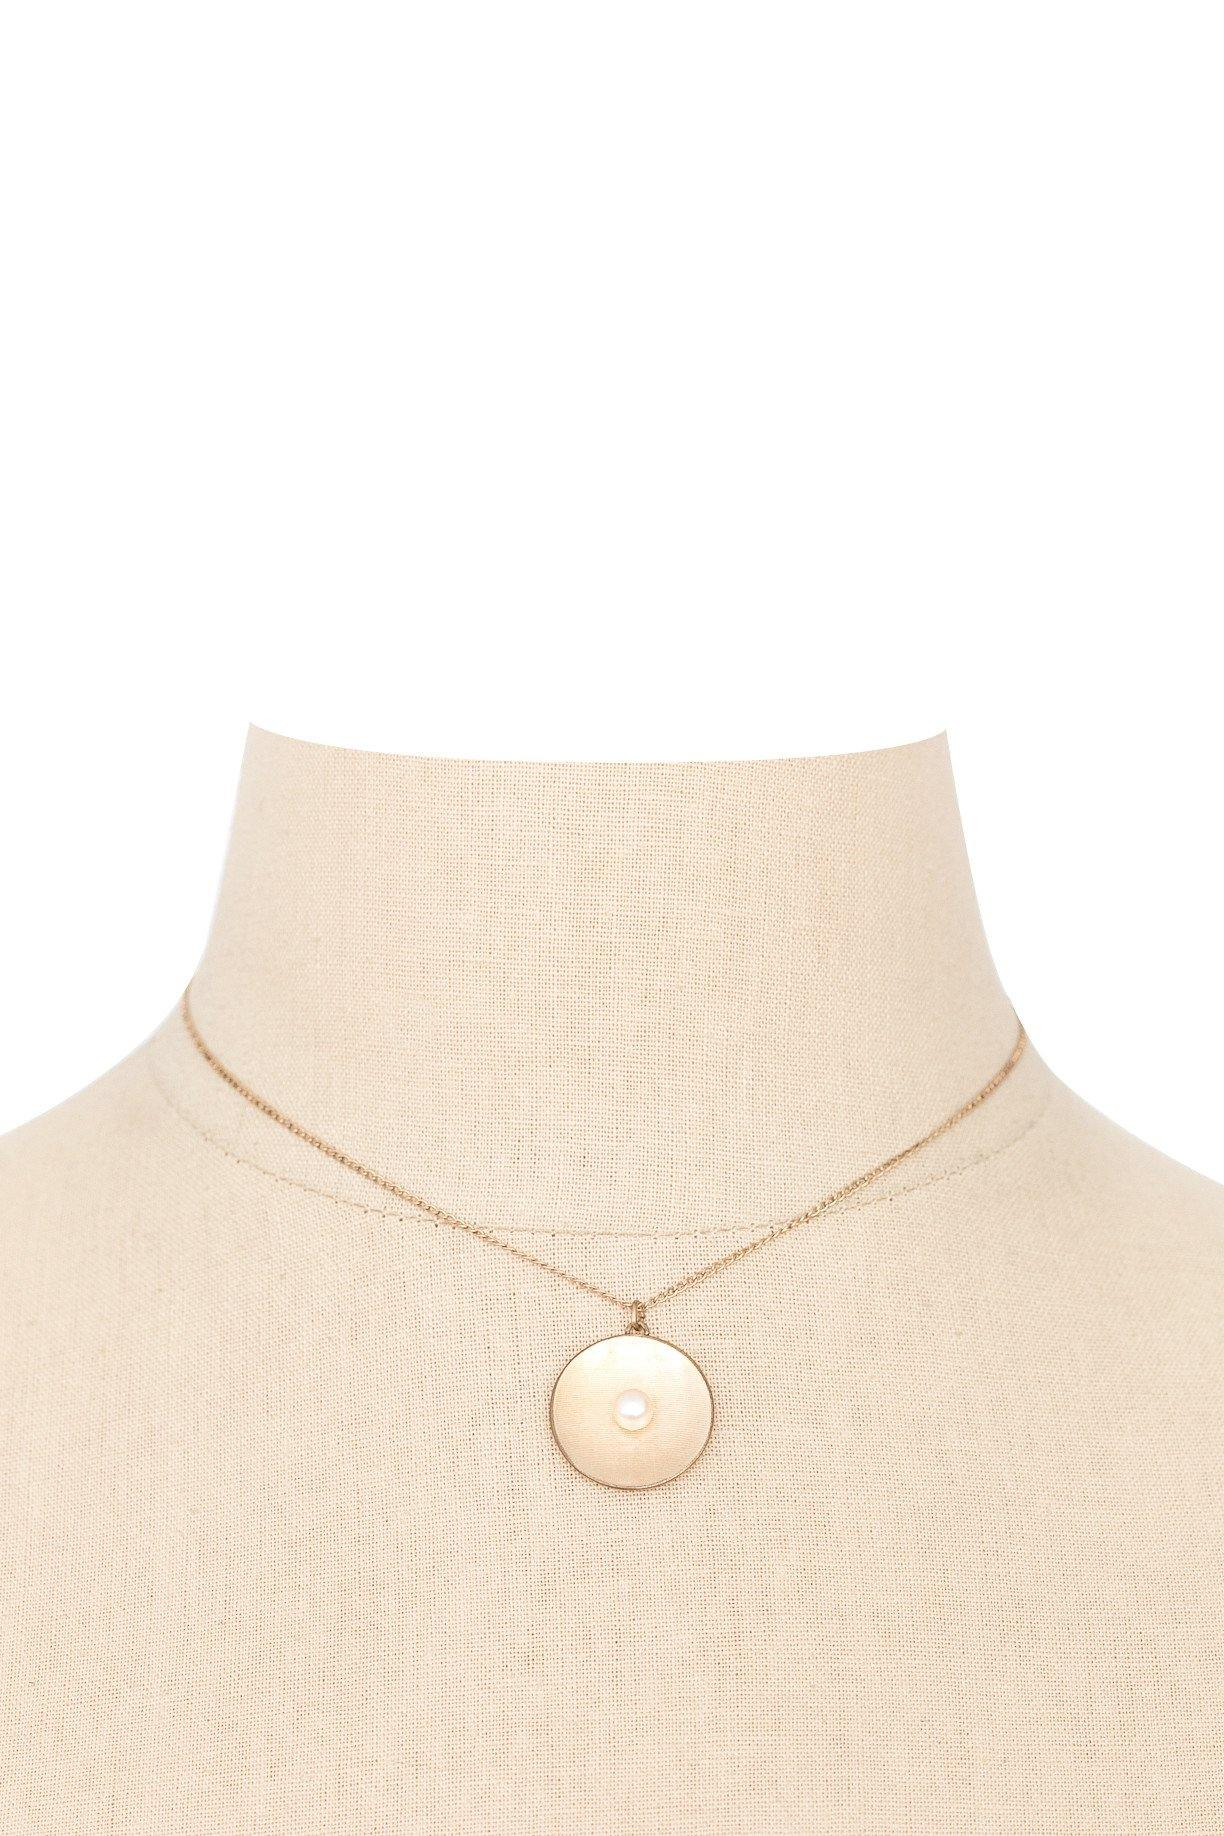 50's__Vintage__Pearl Disc Necklace